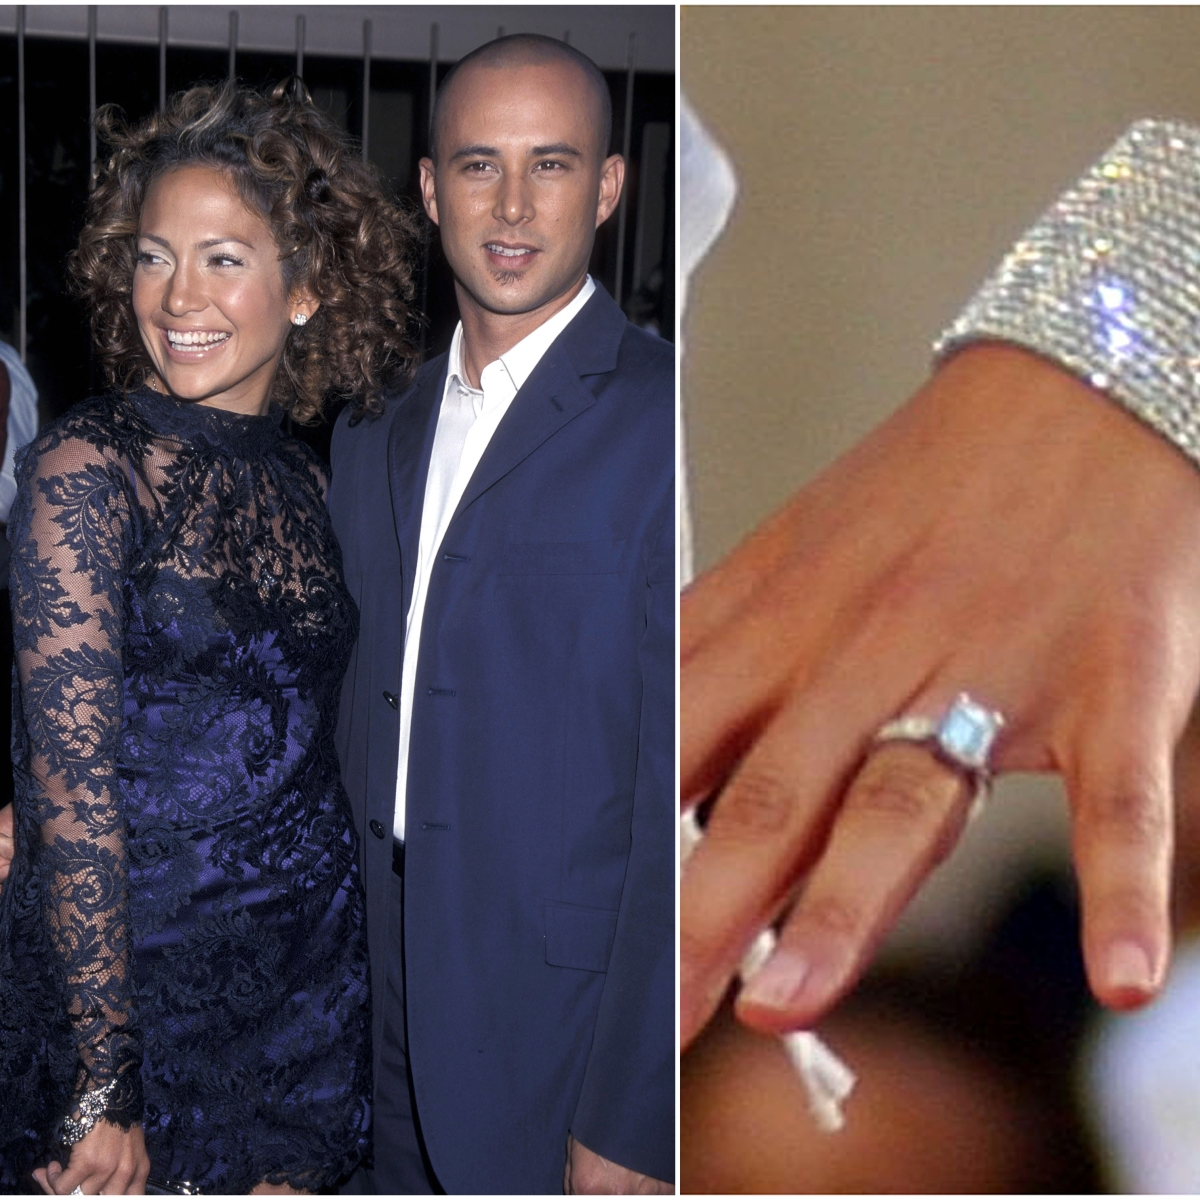 Jennifer Lopez Engagement Rings: See All 5 Throughout the Years